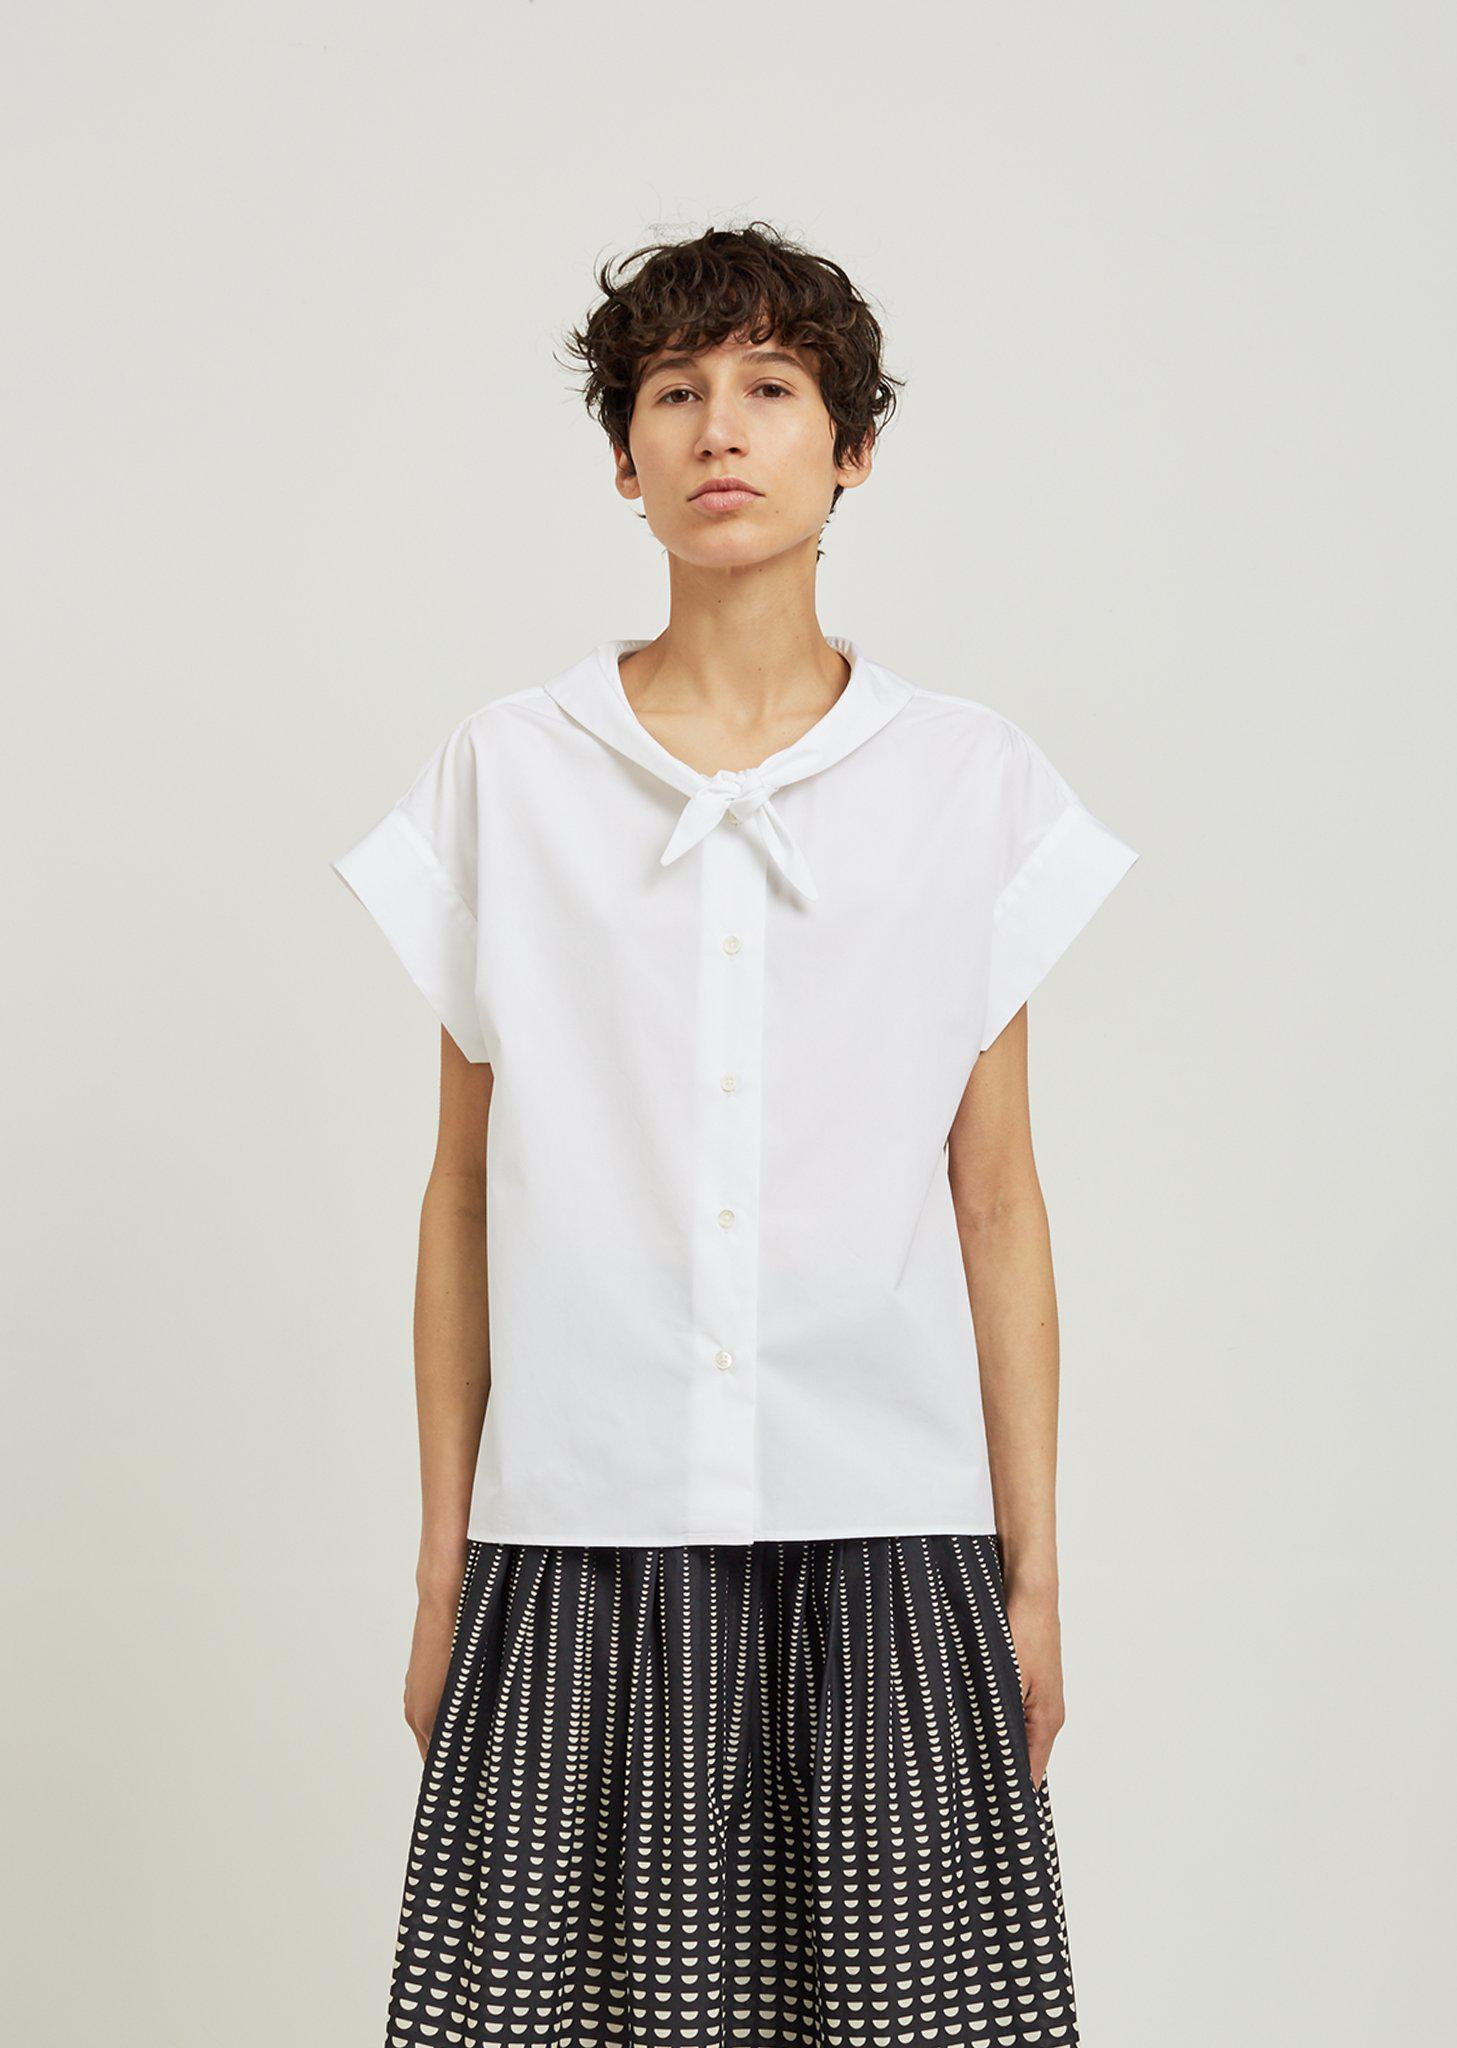 Get New White and Blue Grid Neckerchief Shirt Bless Very Cheap Sale Online Sast For Sale 1e173Z